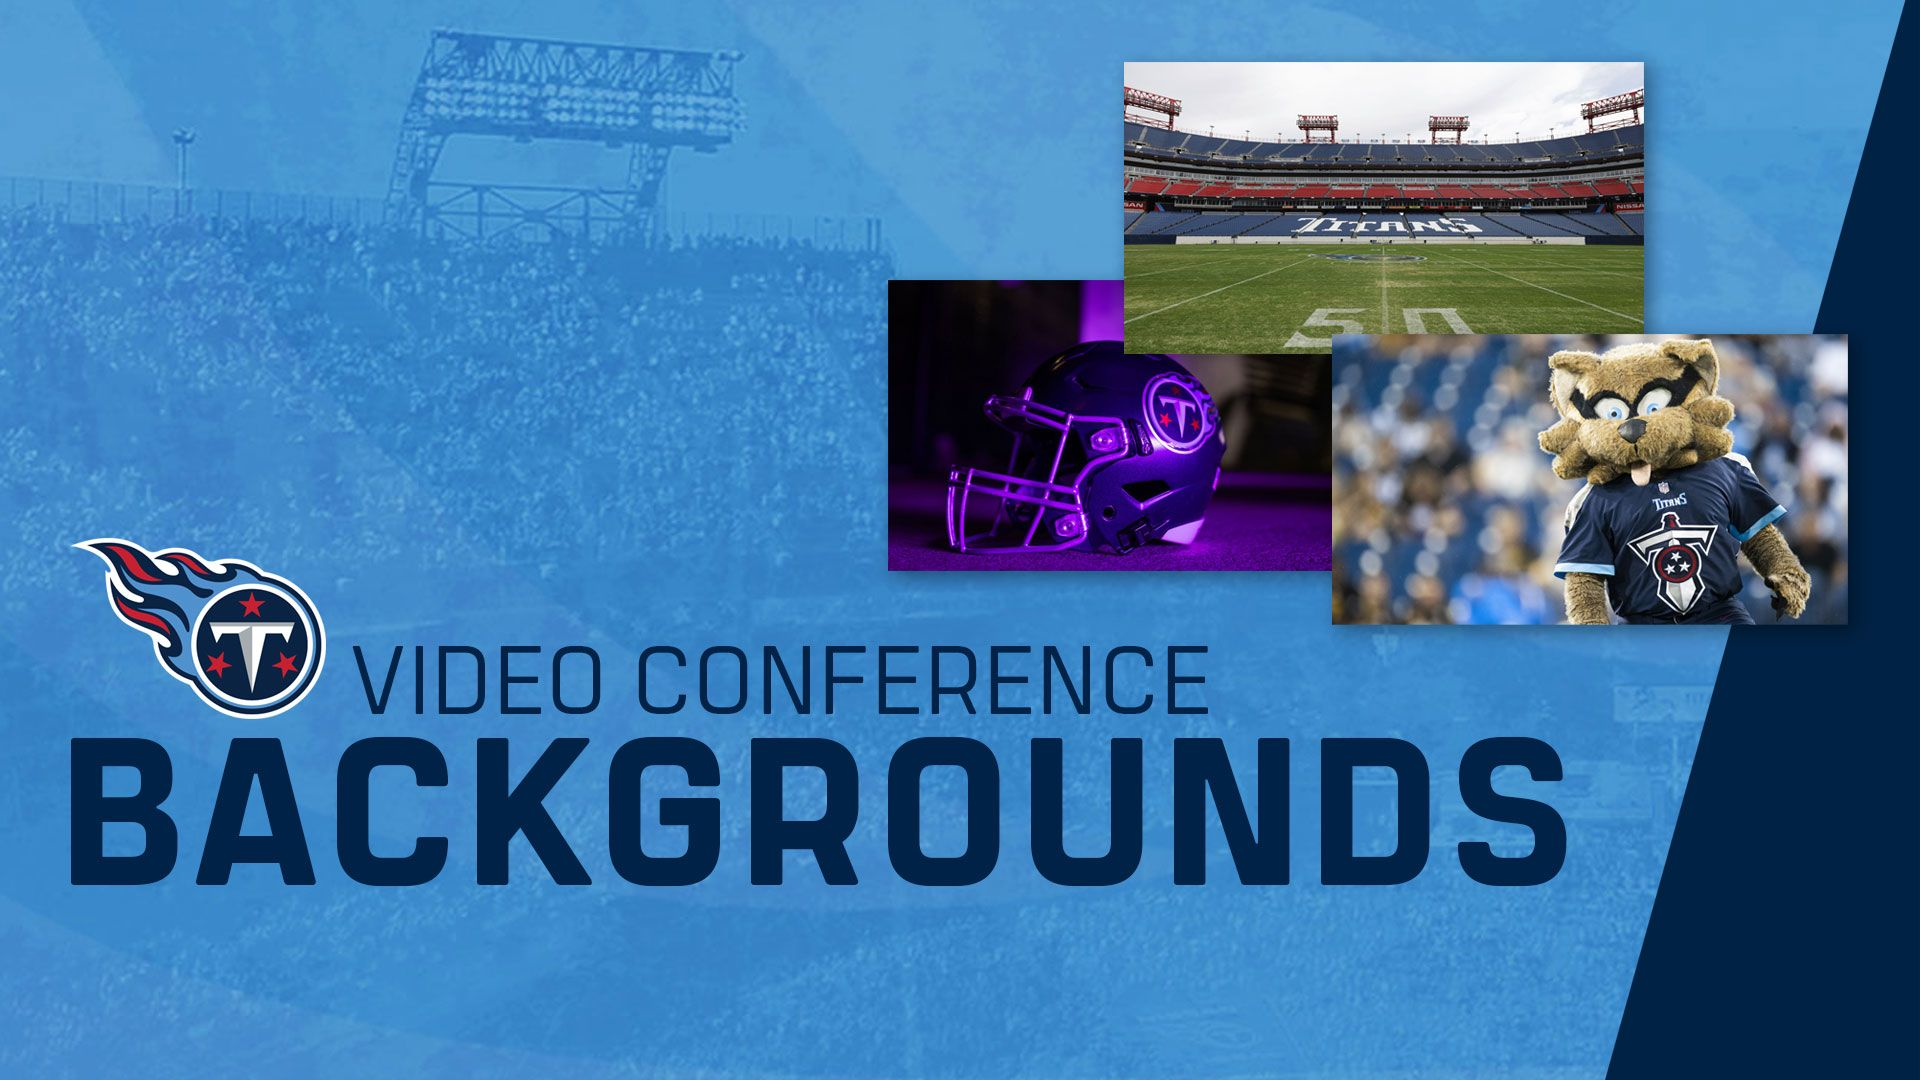 Video Conference Backgrounds